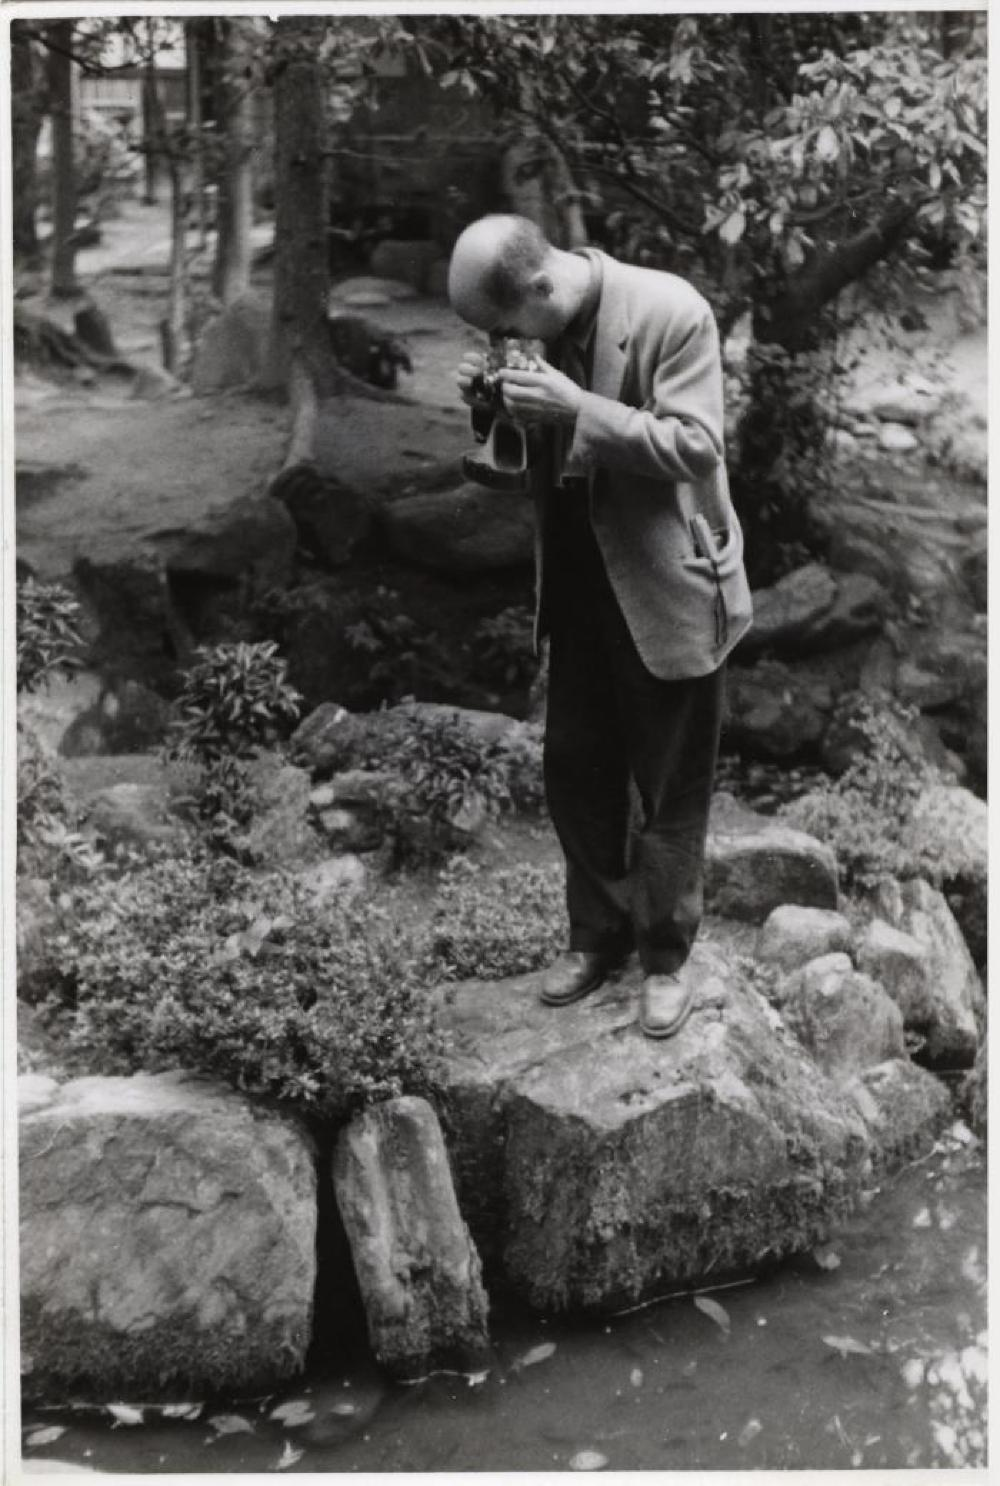 Isamu Noguchi stone hunting for the UNESCO Gardens project